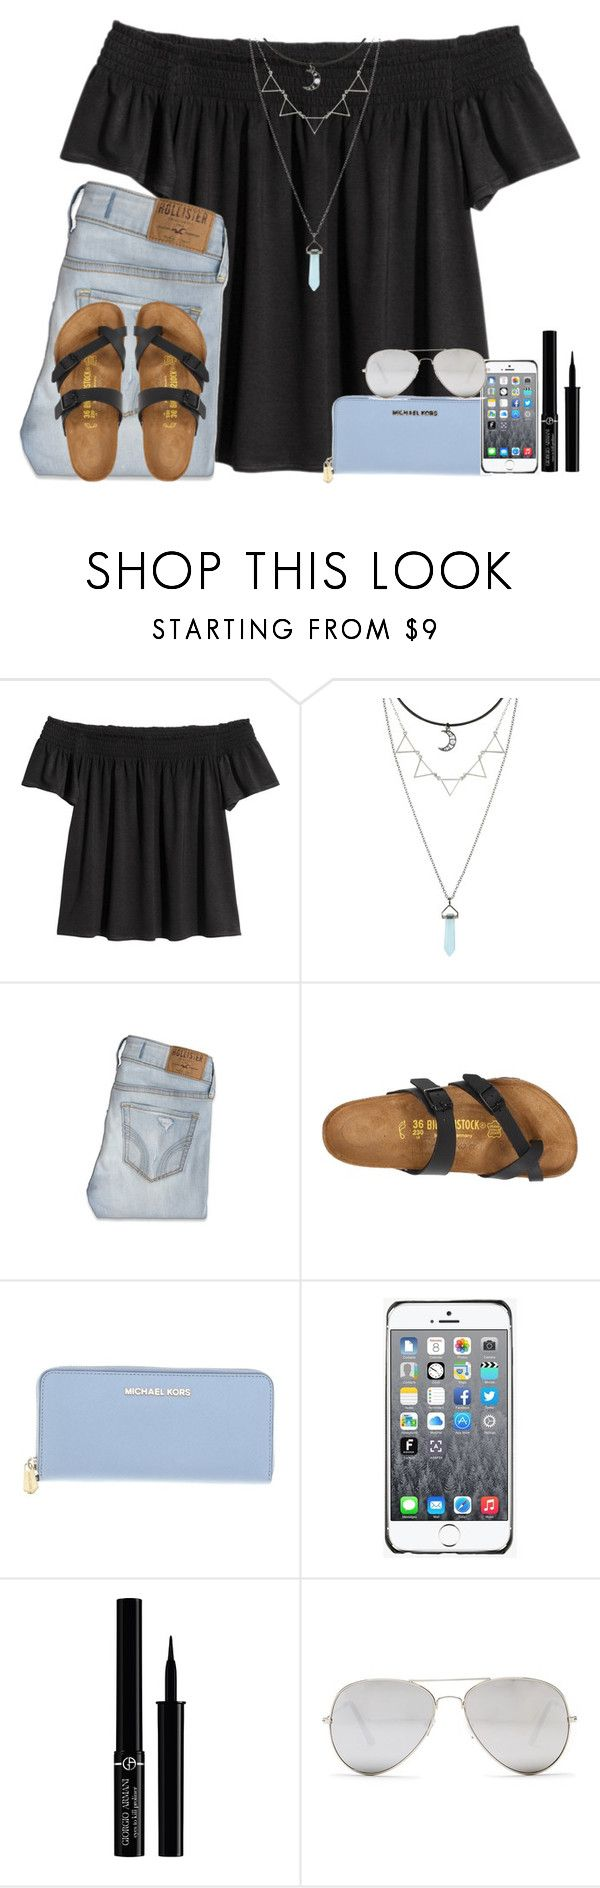 """""""Untitled #615"""" by kaye-376 ❤ liked on Polyvore featuring Hot Topic, Hollister Co., Birkenstock, Michael Kors, Fendi, Giorgio Armani and Sunny Rebel"""